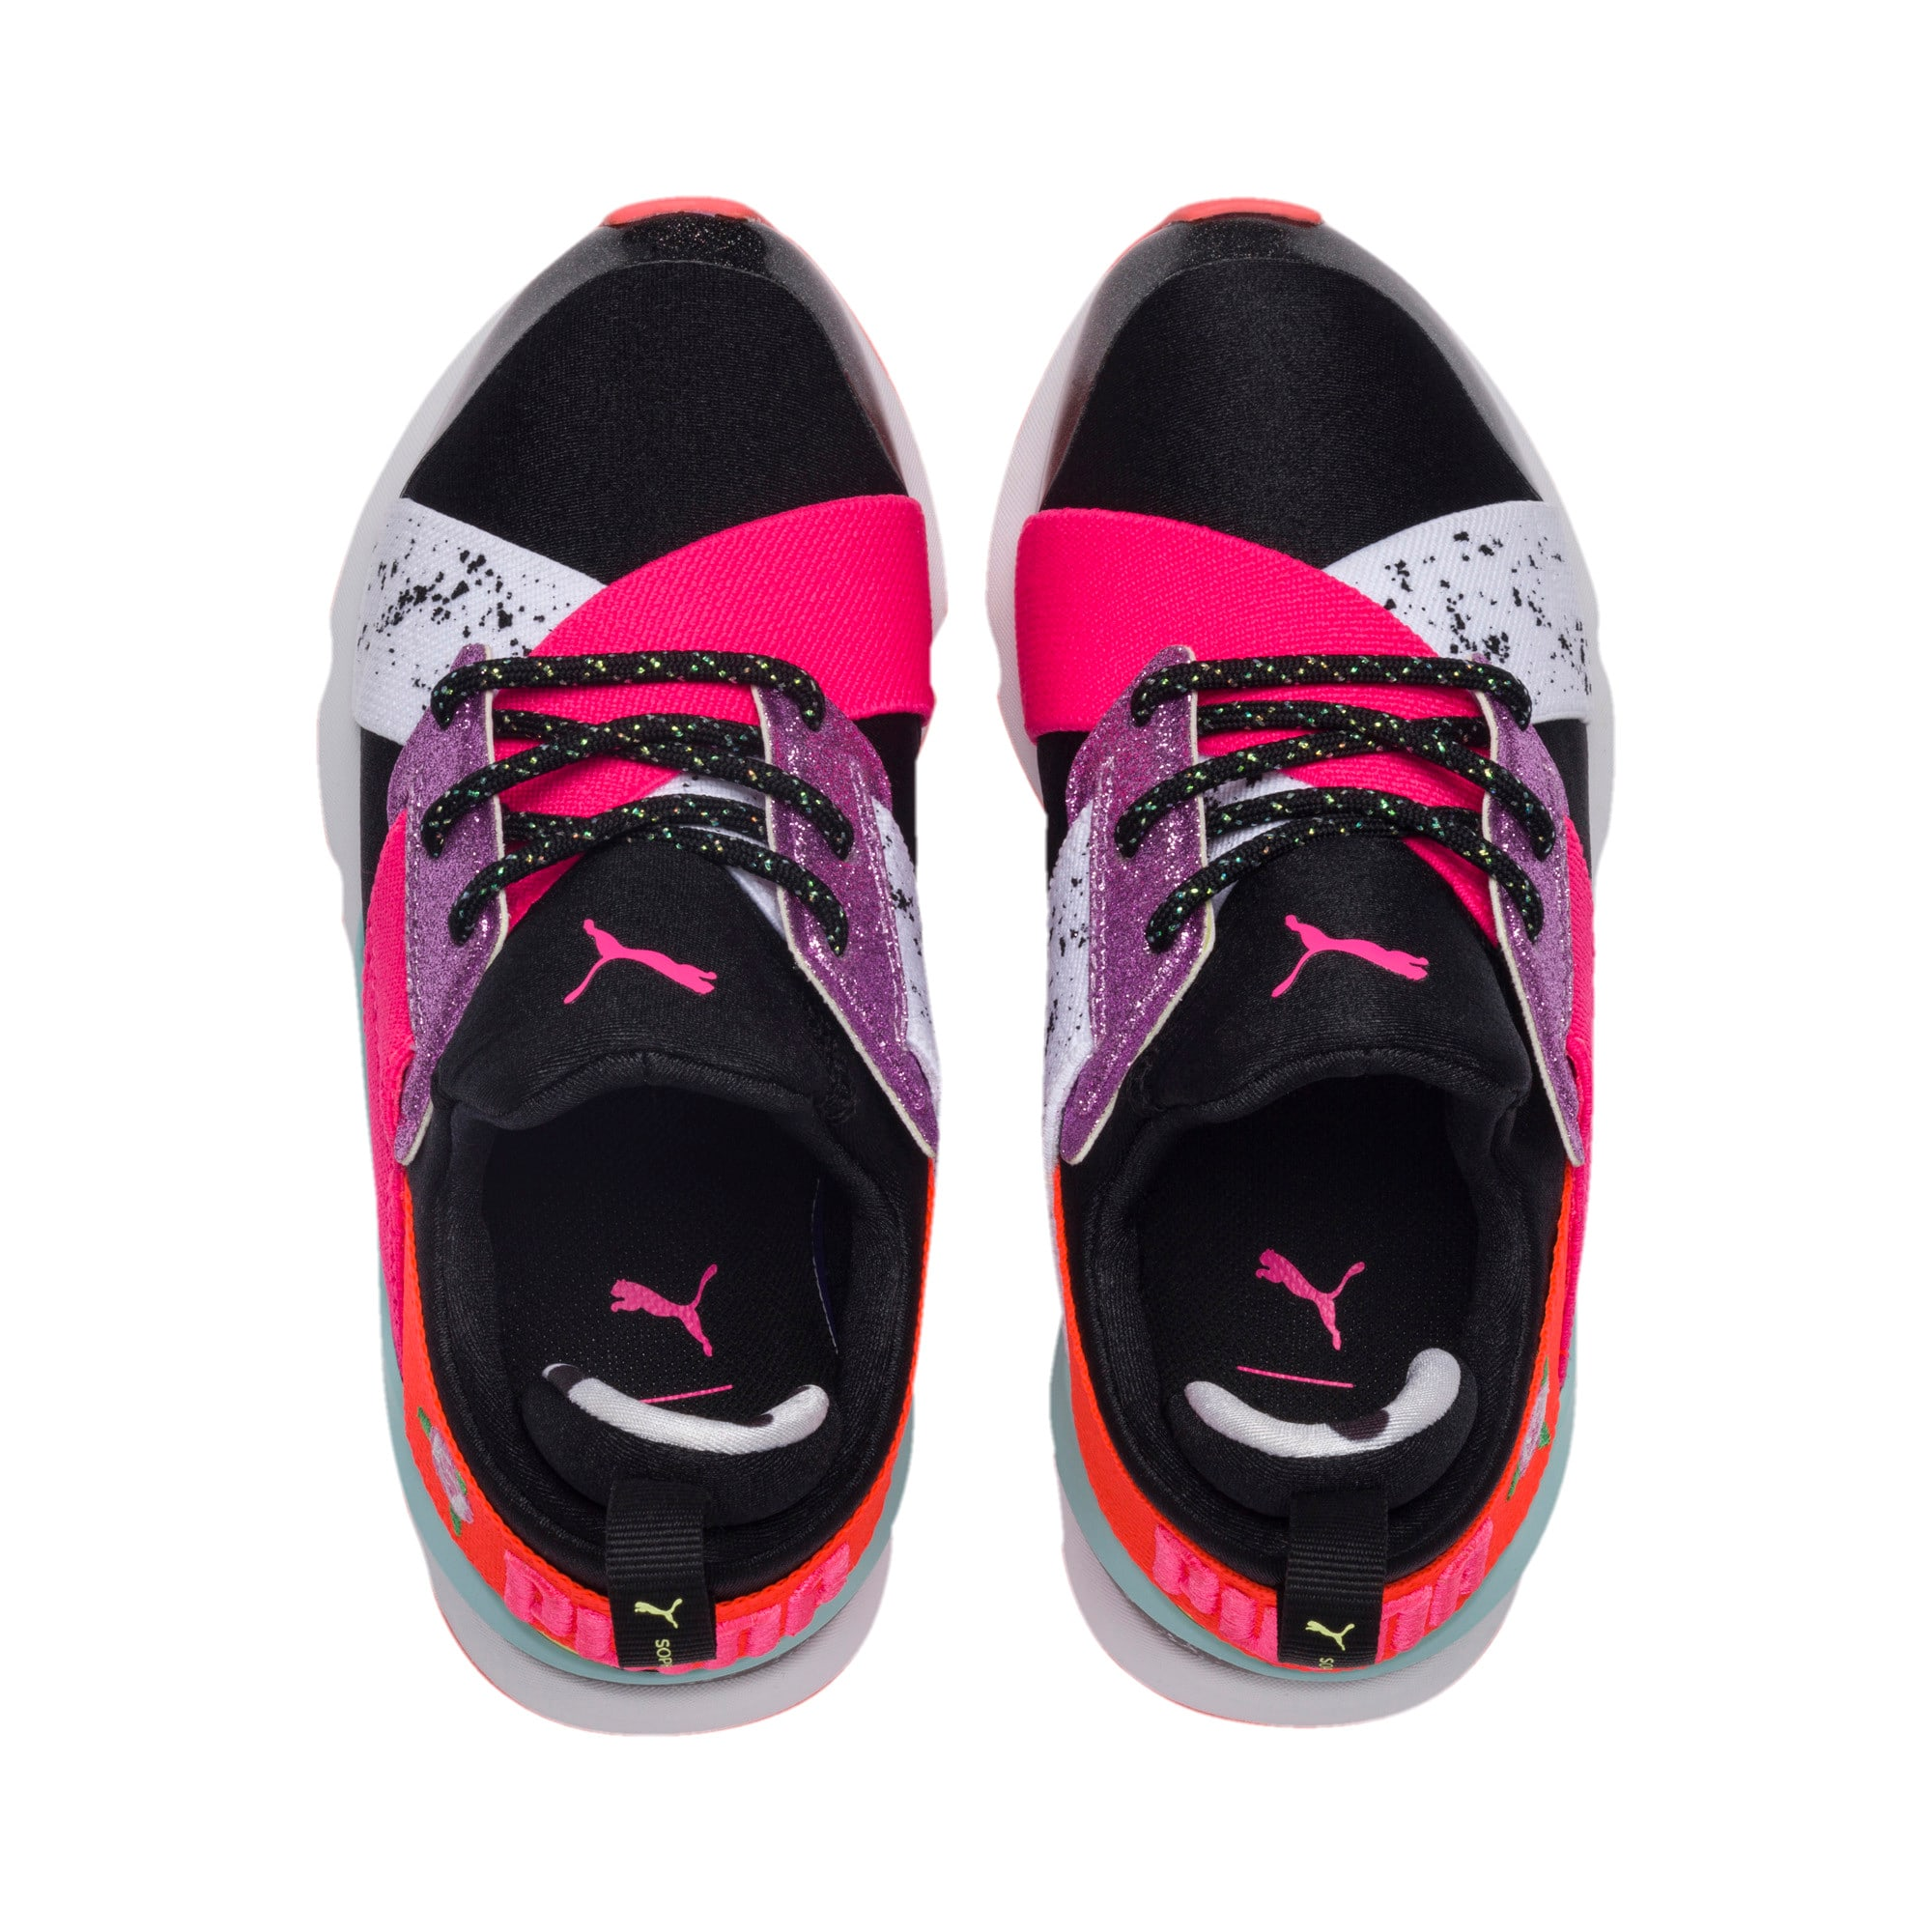 Thumbnail 6 of PUMA x SOPHIA WEBSTER Muse Little Kids' Shoes, Puma Black-Puma White, medium